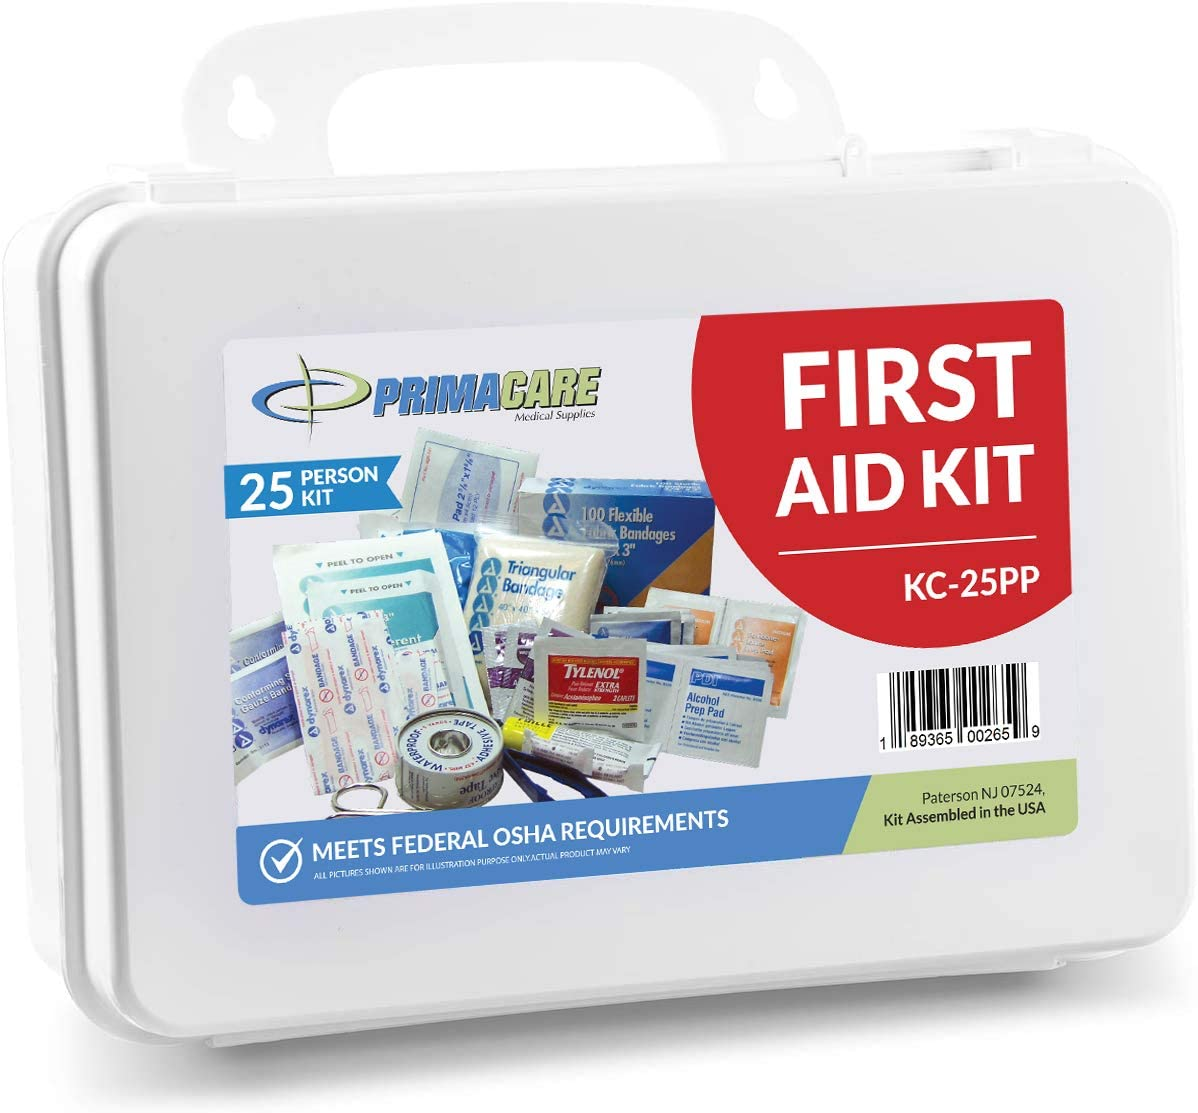 Primacare 25 Person Medium Emergency Preparedness First Aid Kit for Home, School and Office, Wall Mounted